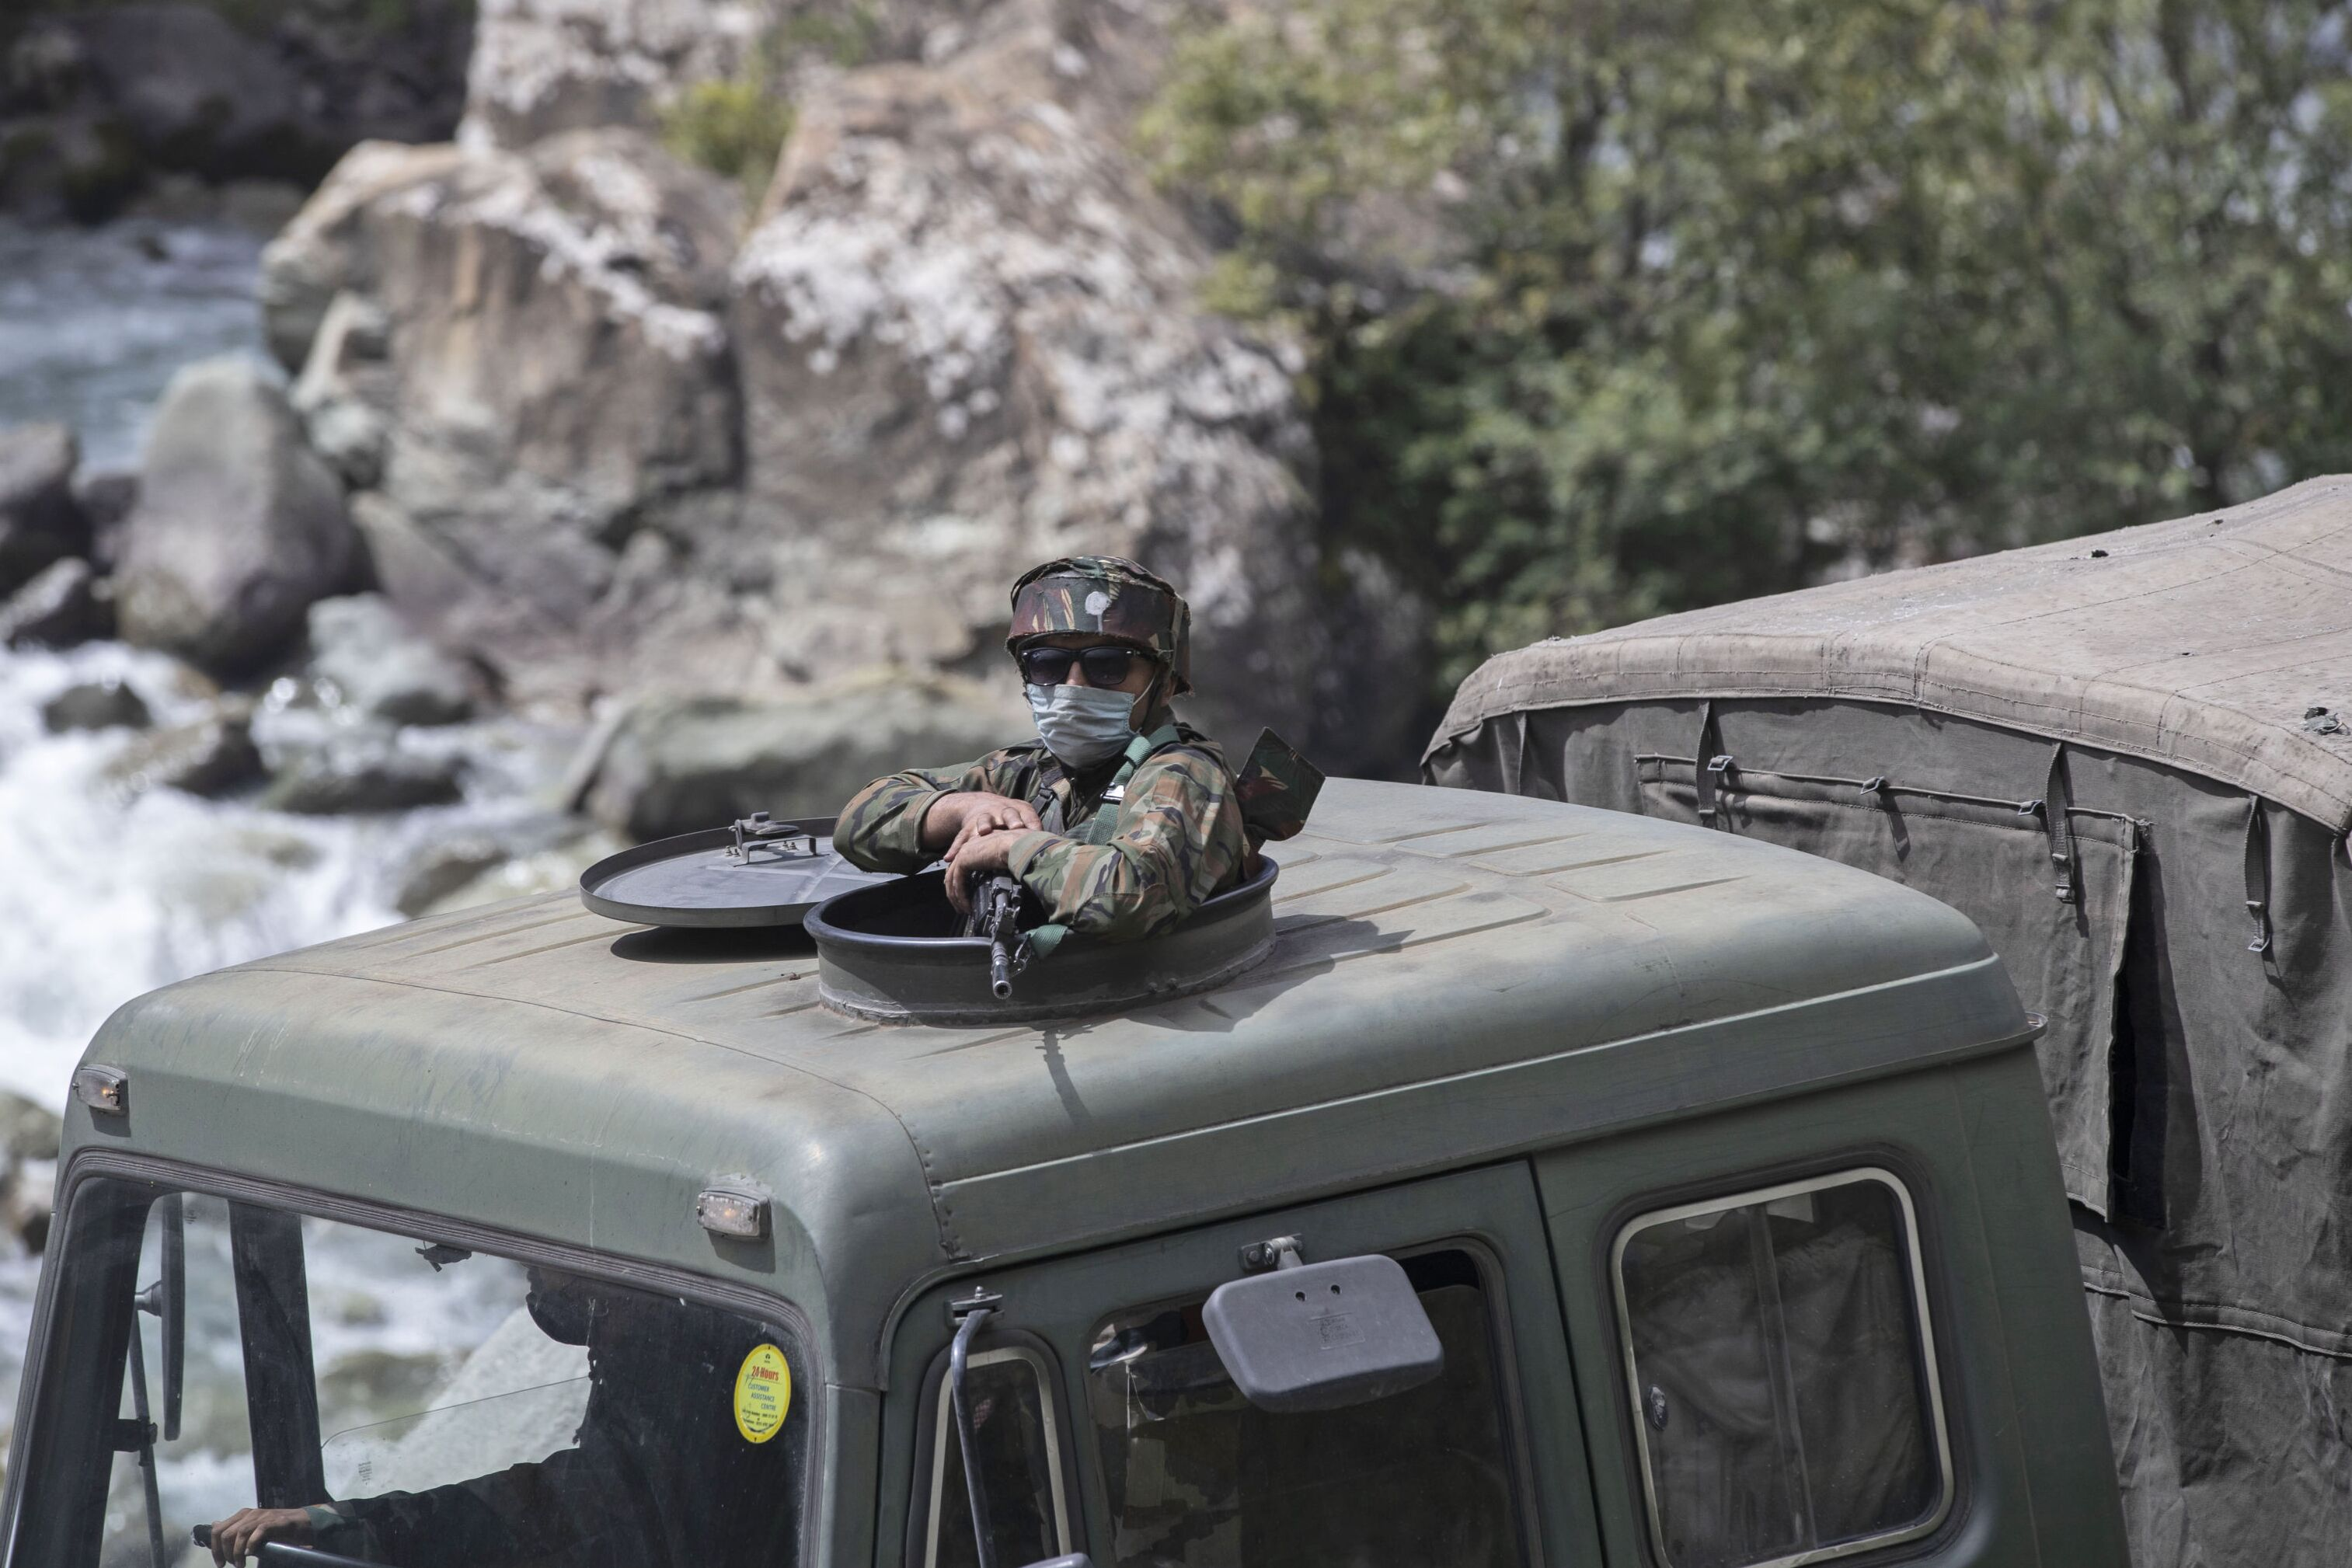 An Indian army soldier keeps guard on top of his vehicle as their convoy moves on the Srinagar- Ladakh highway at Gagangeer, northeast of Srinagar, Indian-controlled Kashmir, Tuesday, Sept. 1, 2020